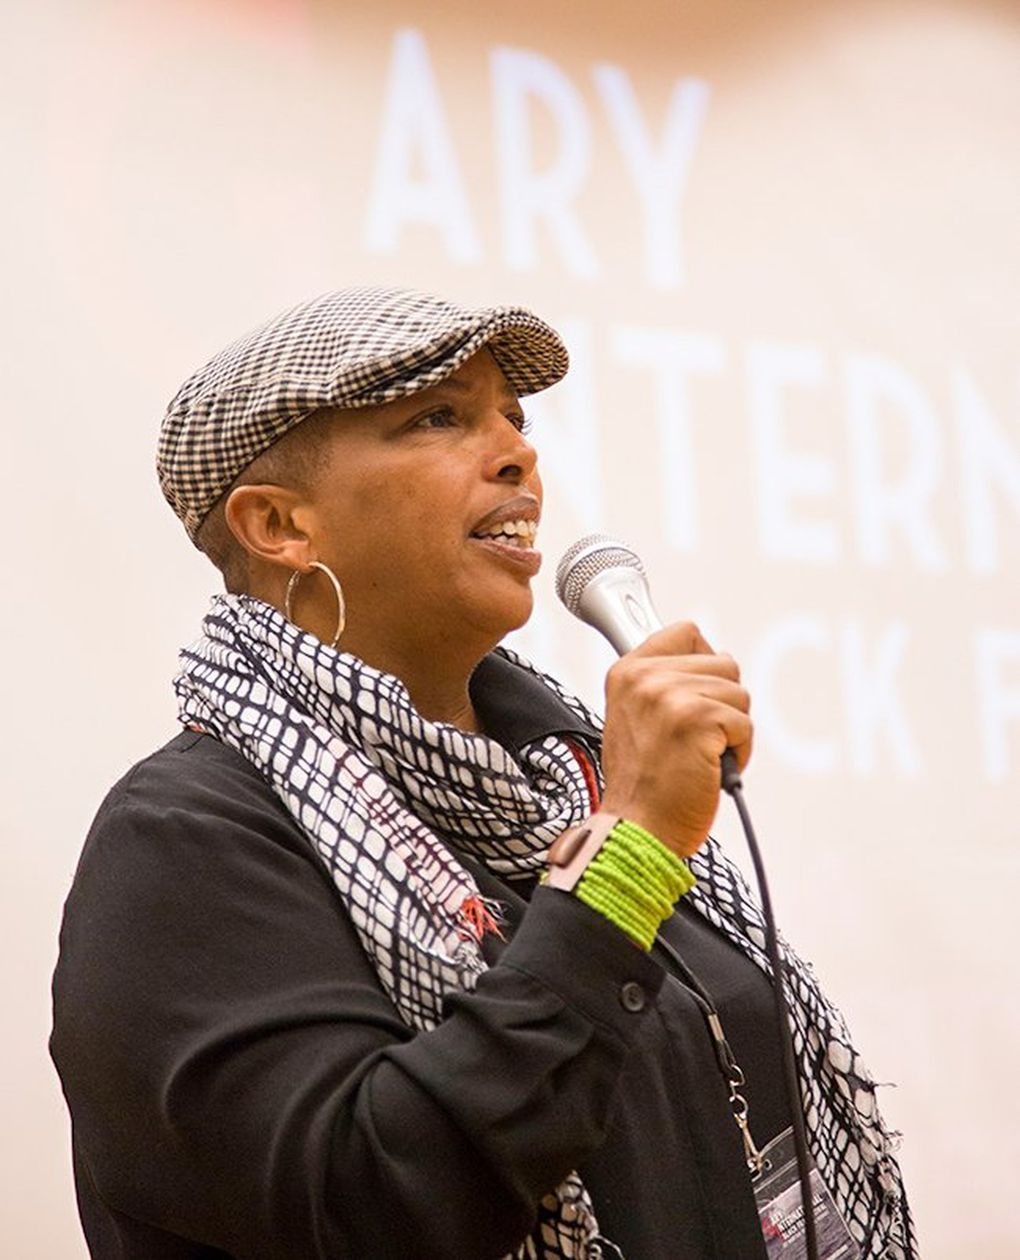 Karen Toering, a founder of the Black Summer Camp film series, which has weekly film showings on Beacon Hill through Oct. 30, speaks at the Gary International Black Film Festival in Illinois in 2015. (Naomi Ishisaka / The Seattle Times)